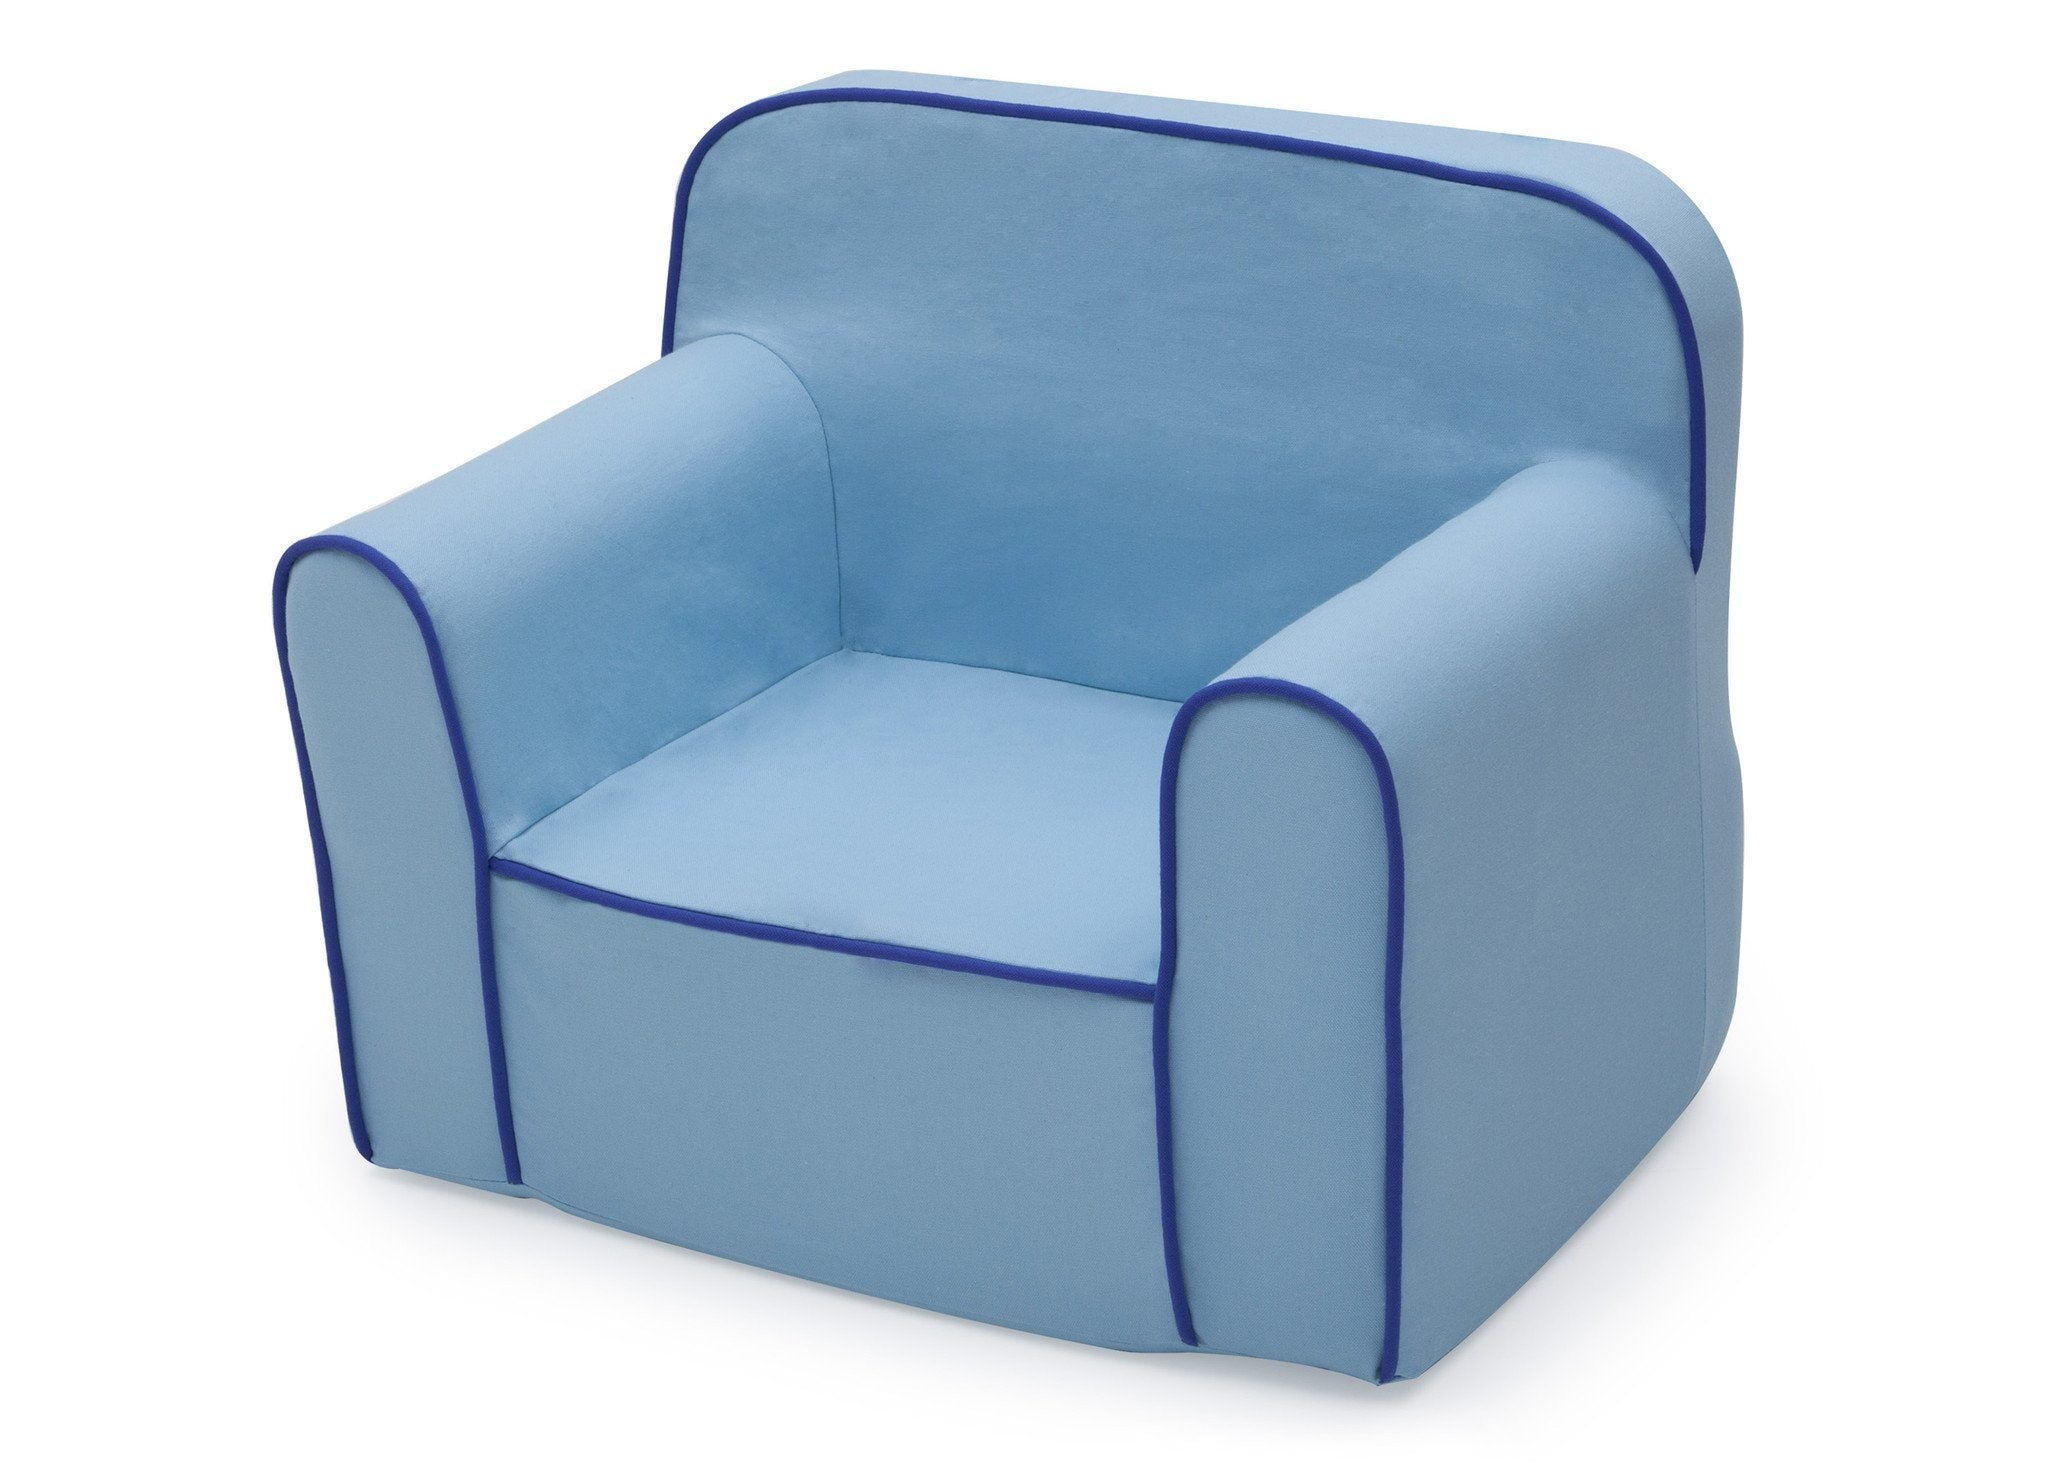 ... Delta Children Blue Foam Snuggle Chair Style 1, Left View A2a ...